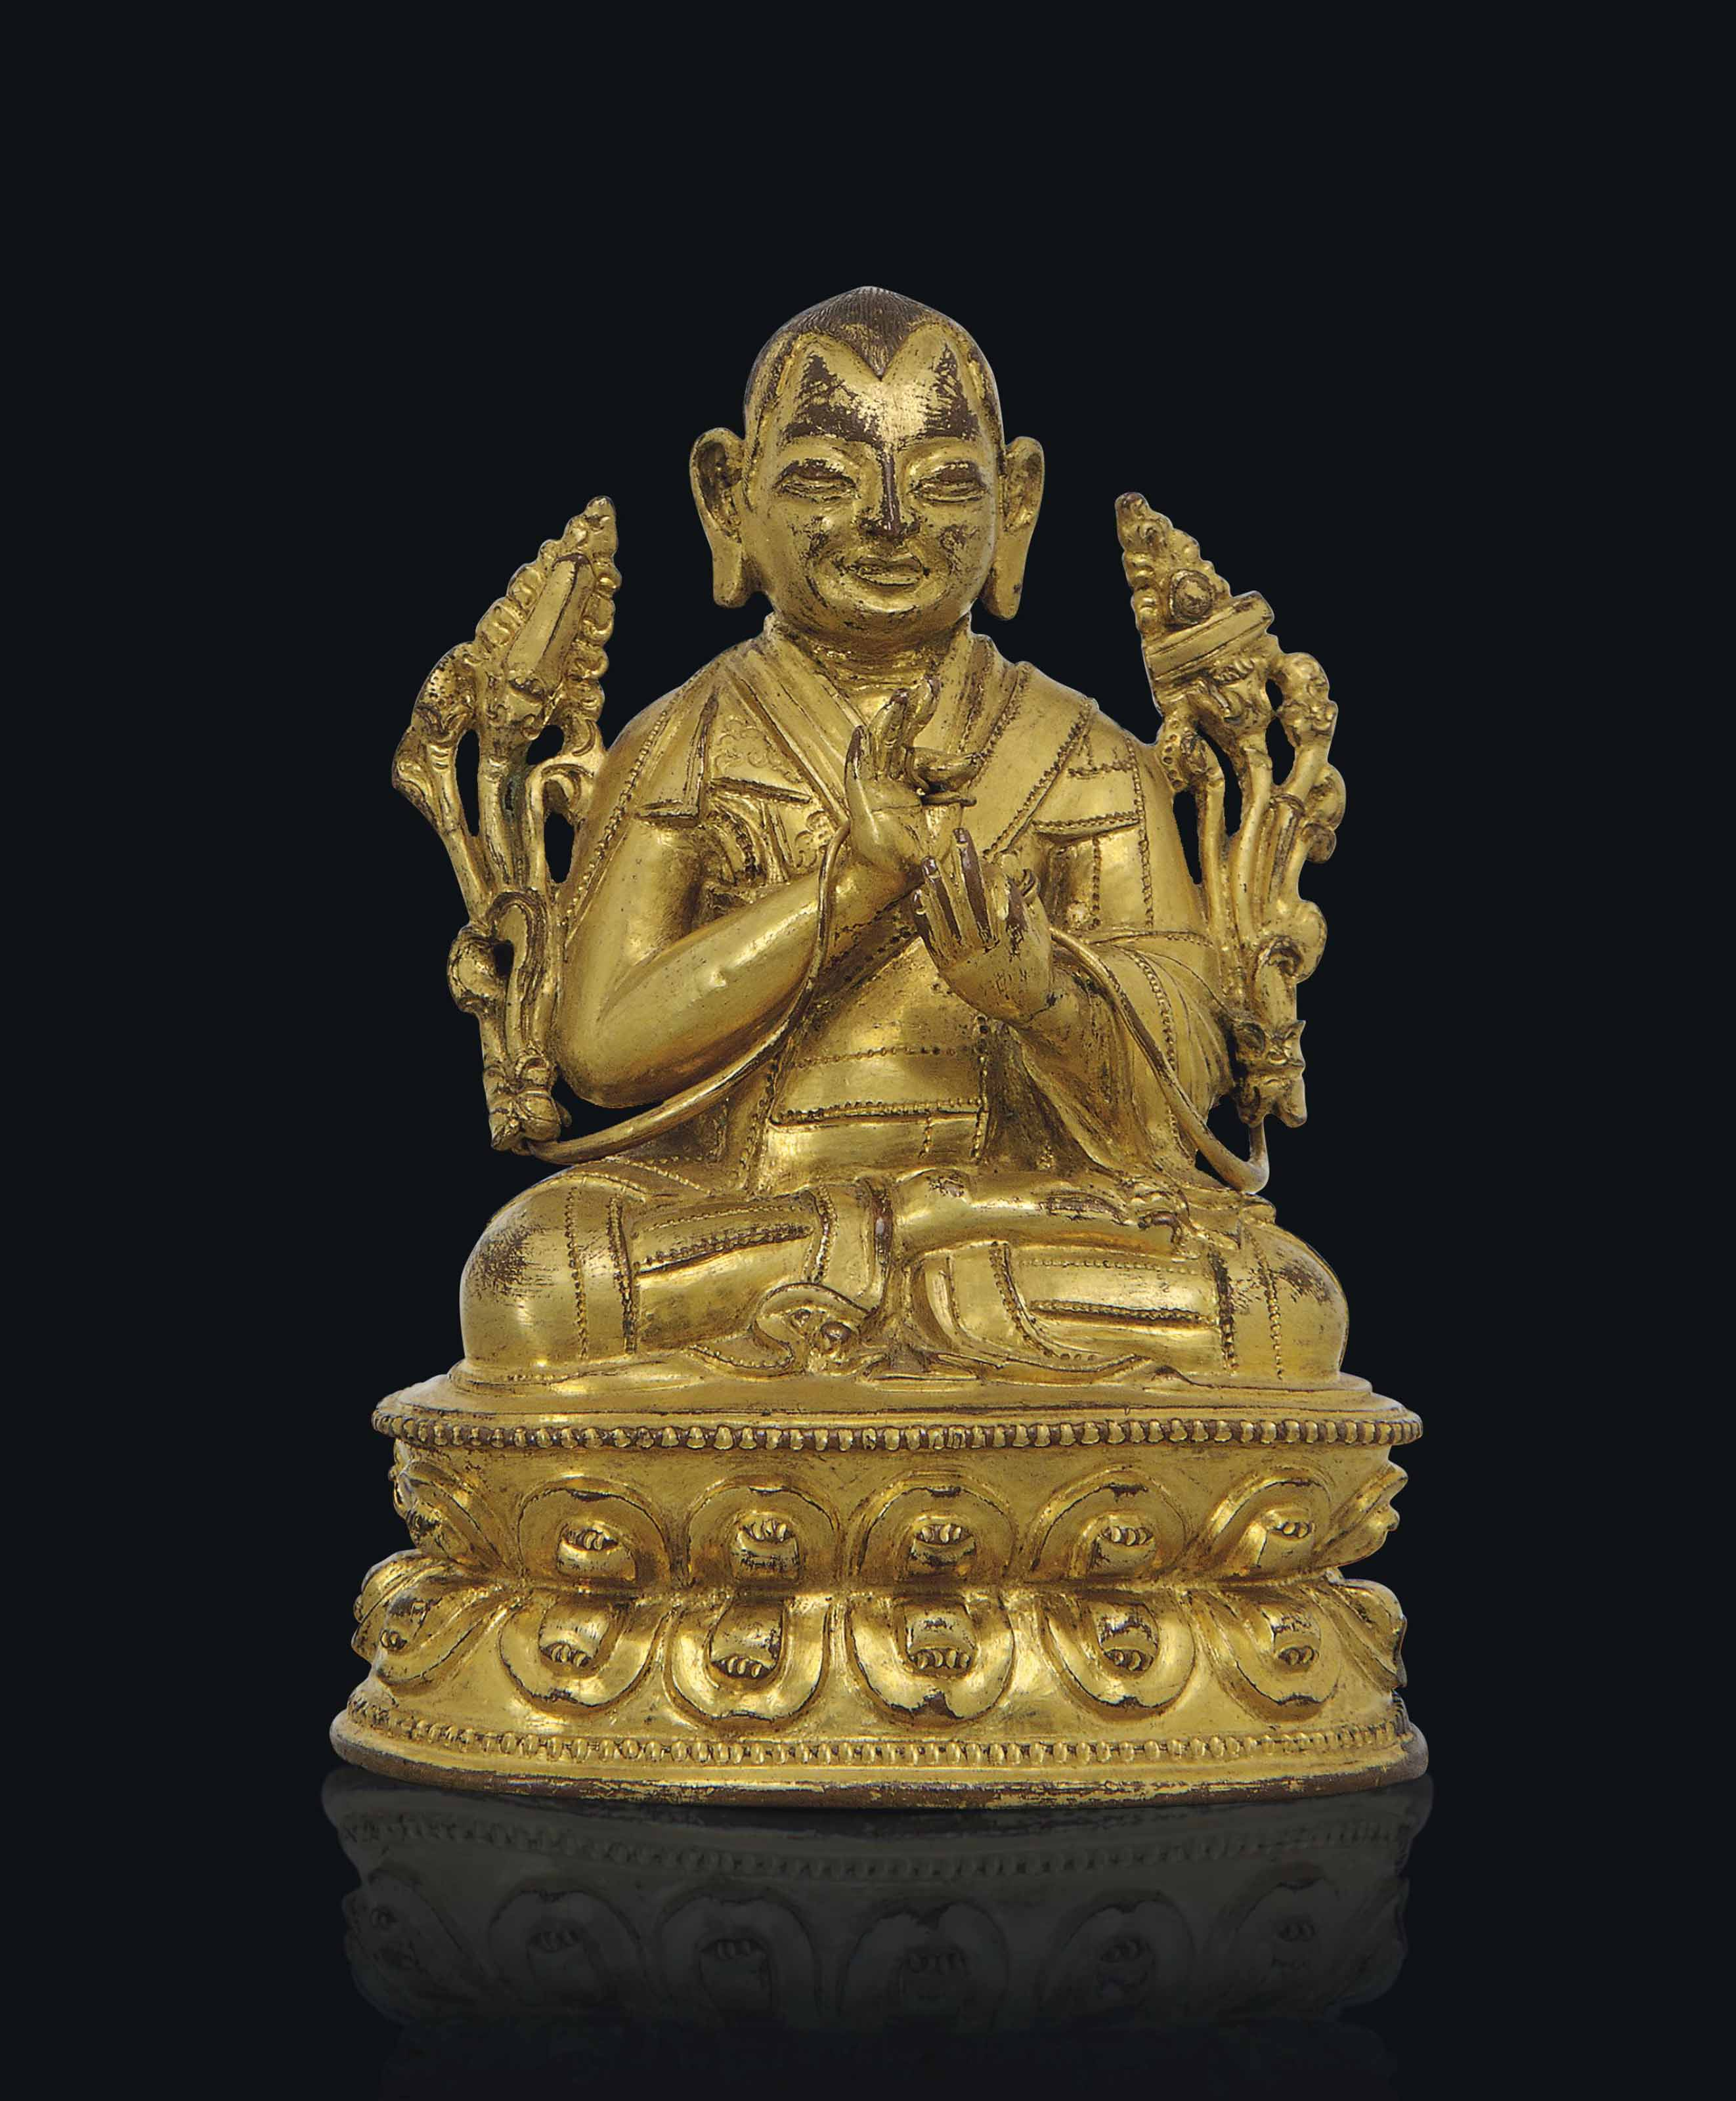 A GILT-BRONZE MODEL OF A LAMA